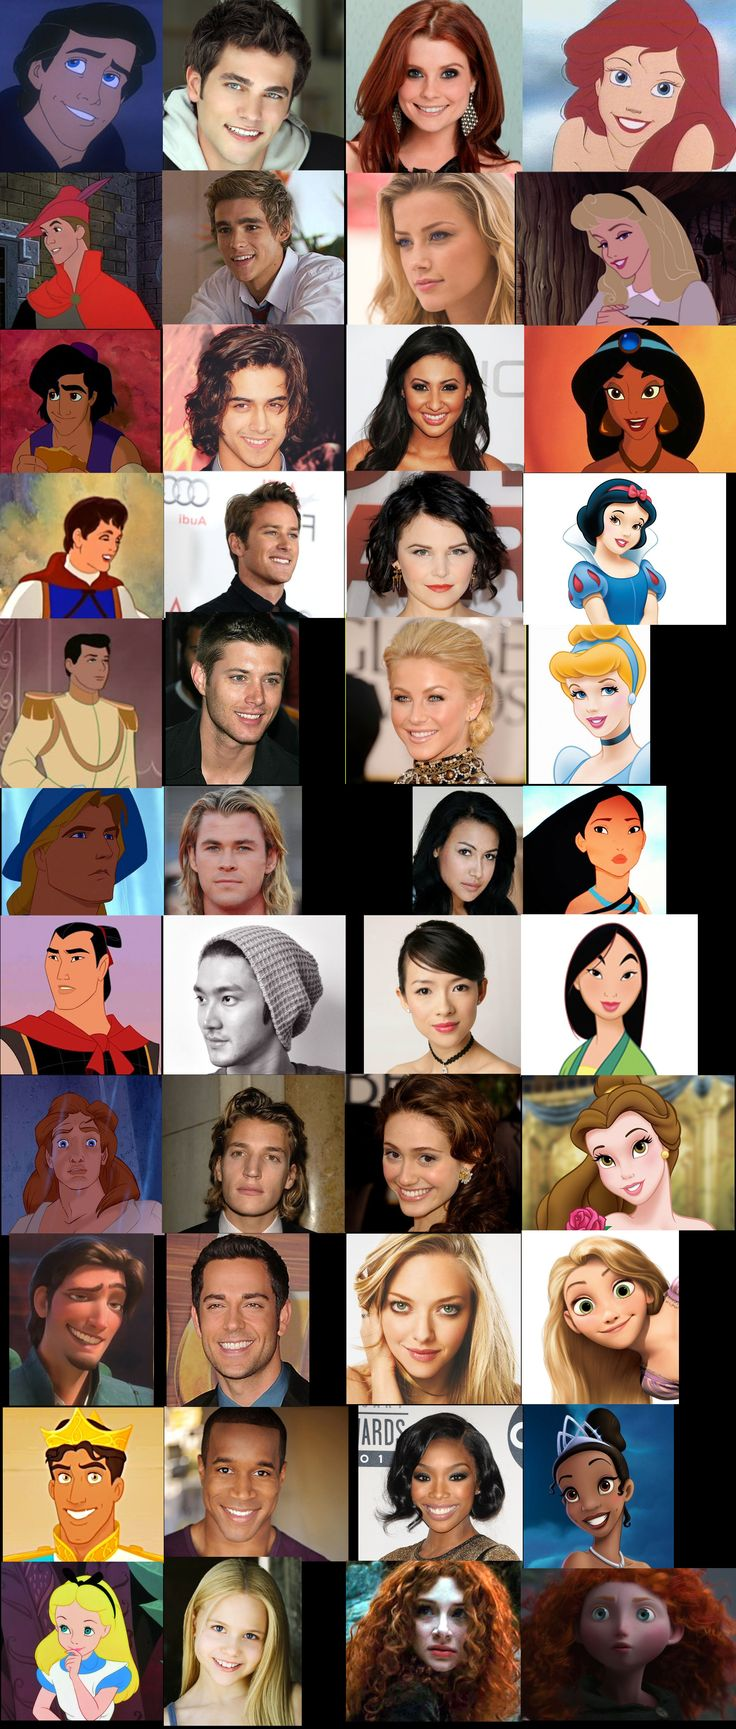 Wow! Best one yet! I think that they should make a real Disney princess movie about all of them together!